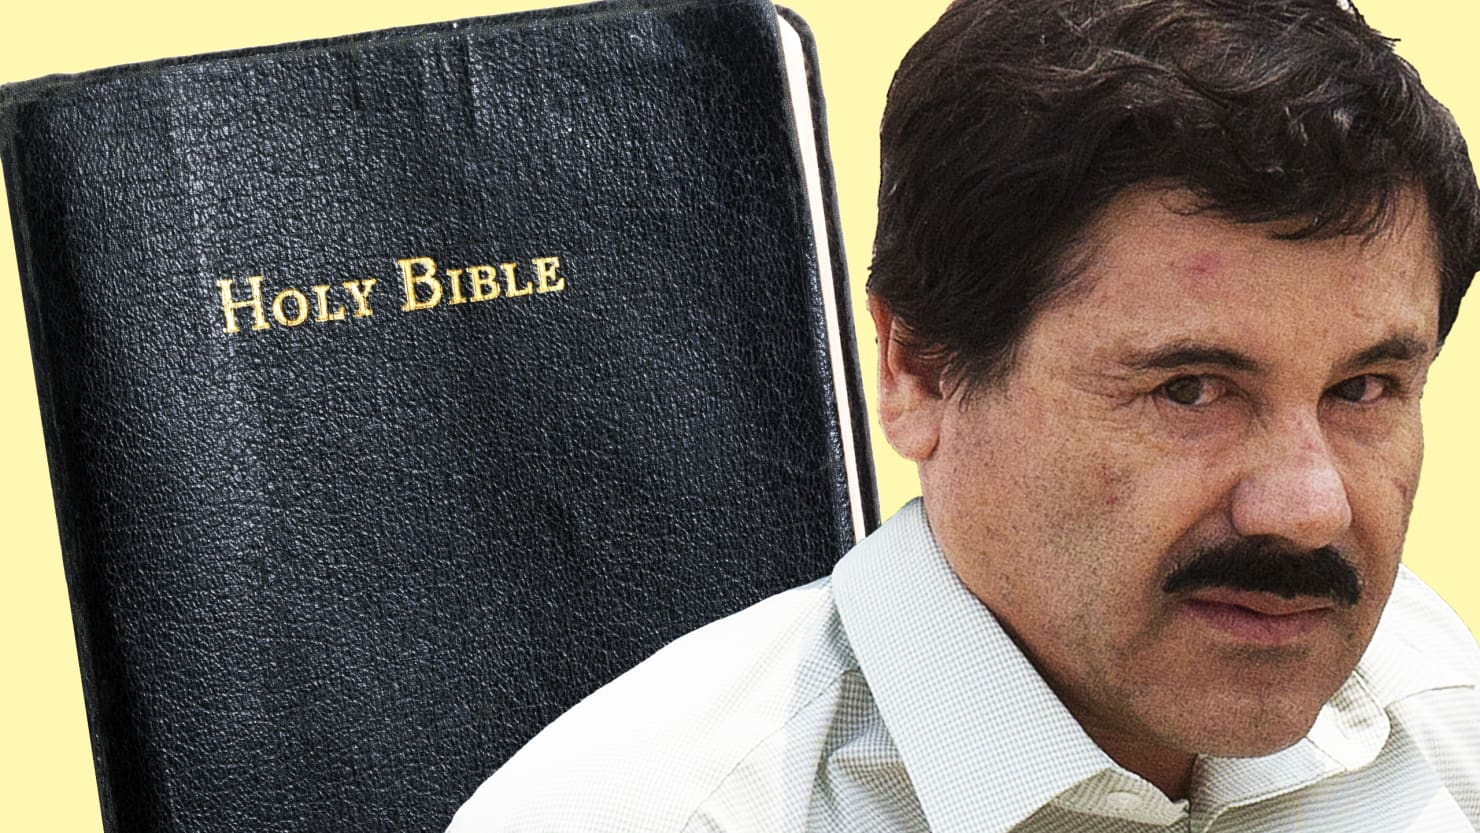 borderland beat el chapo denied bible in jail because feds fear it